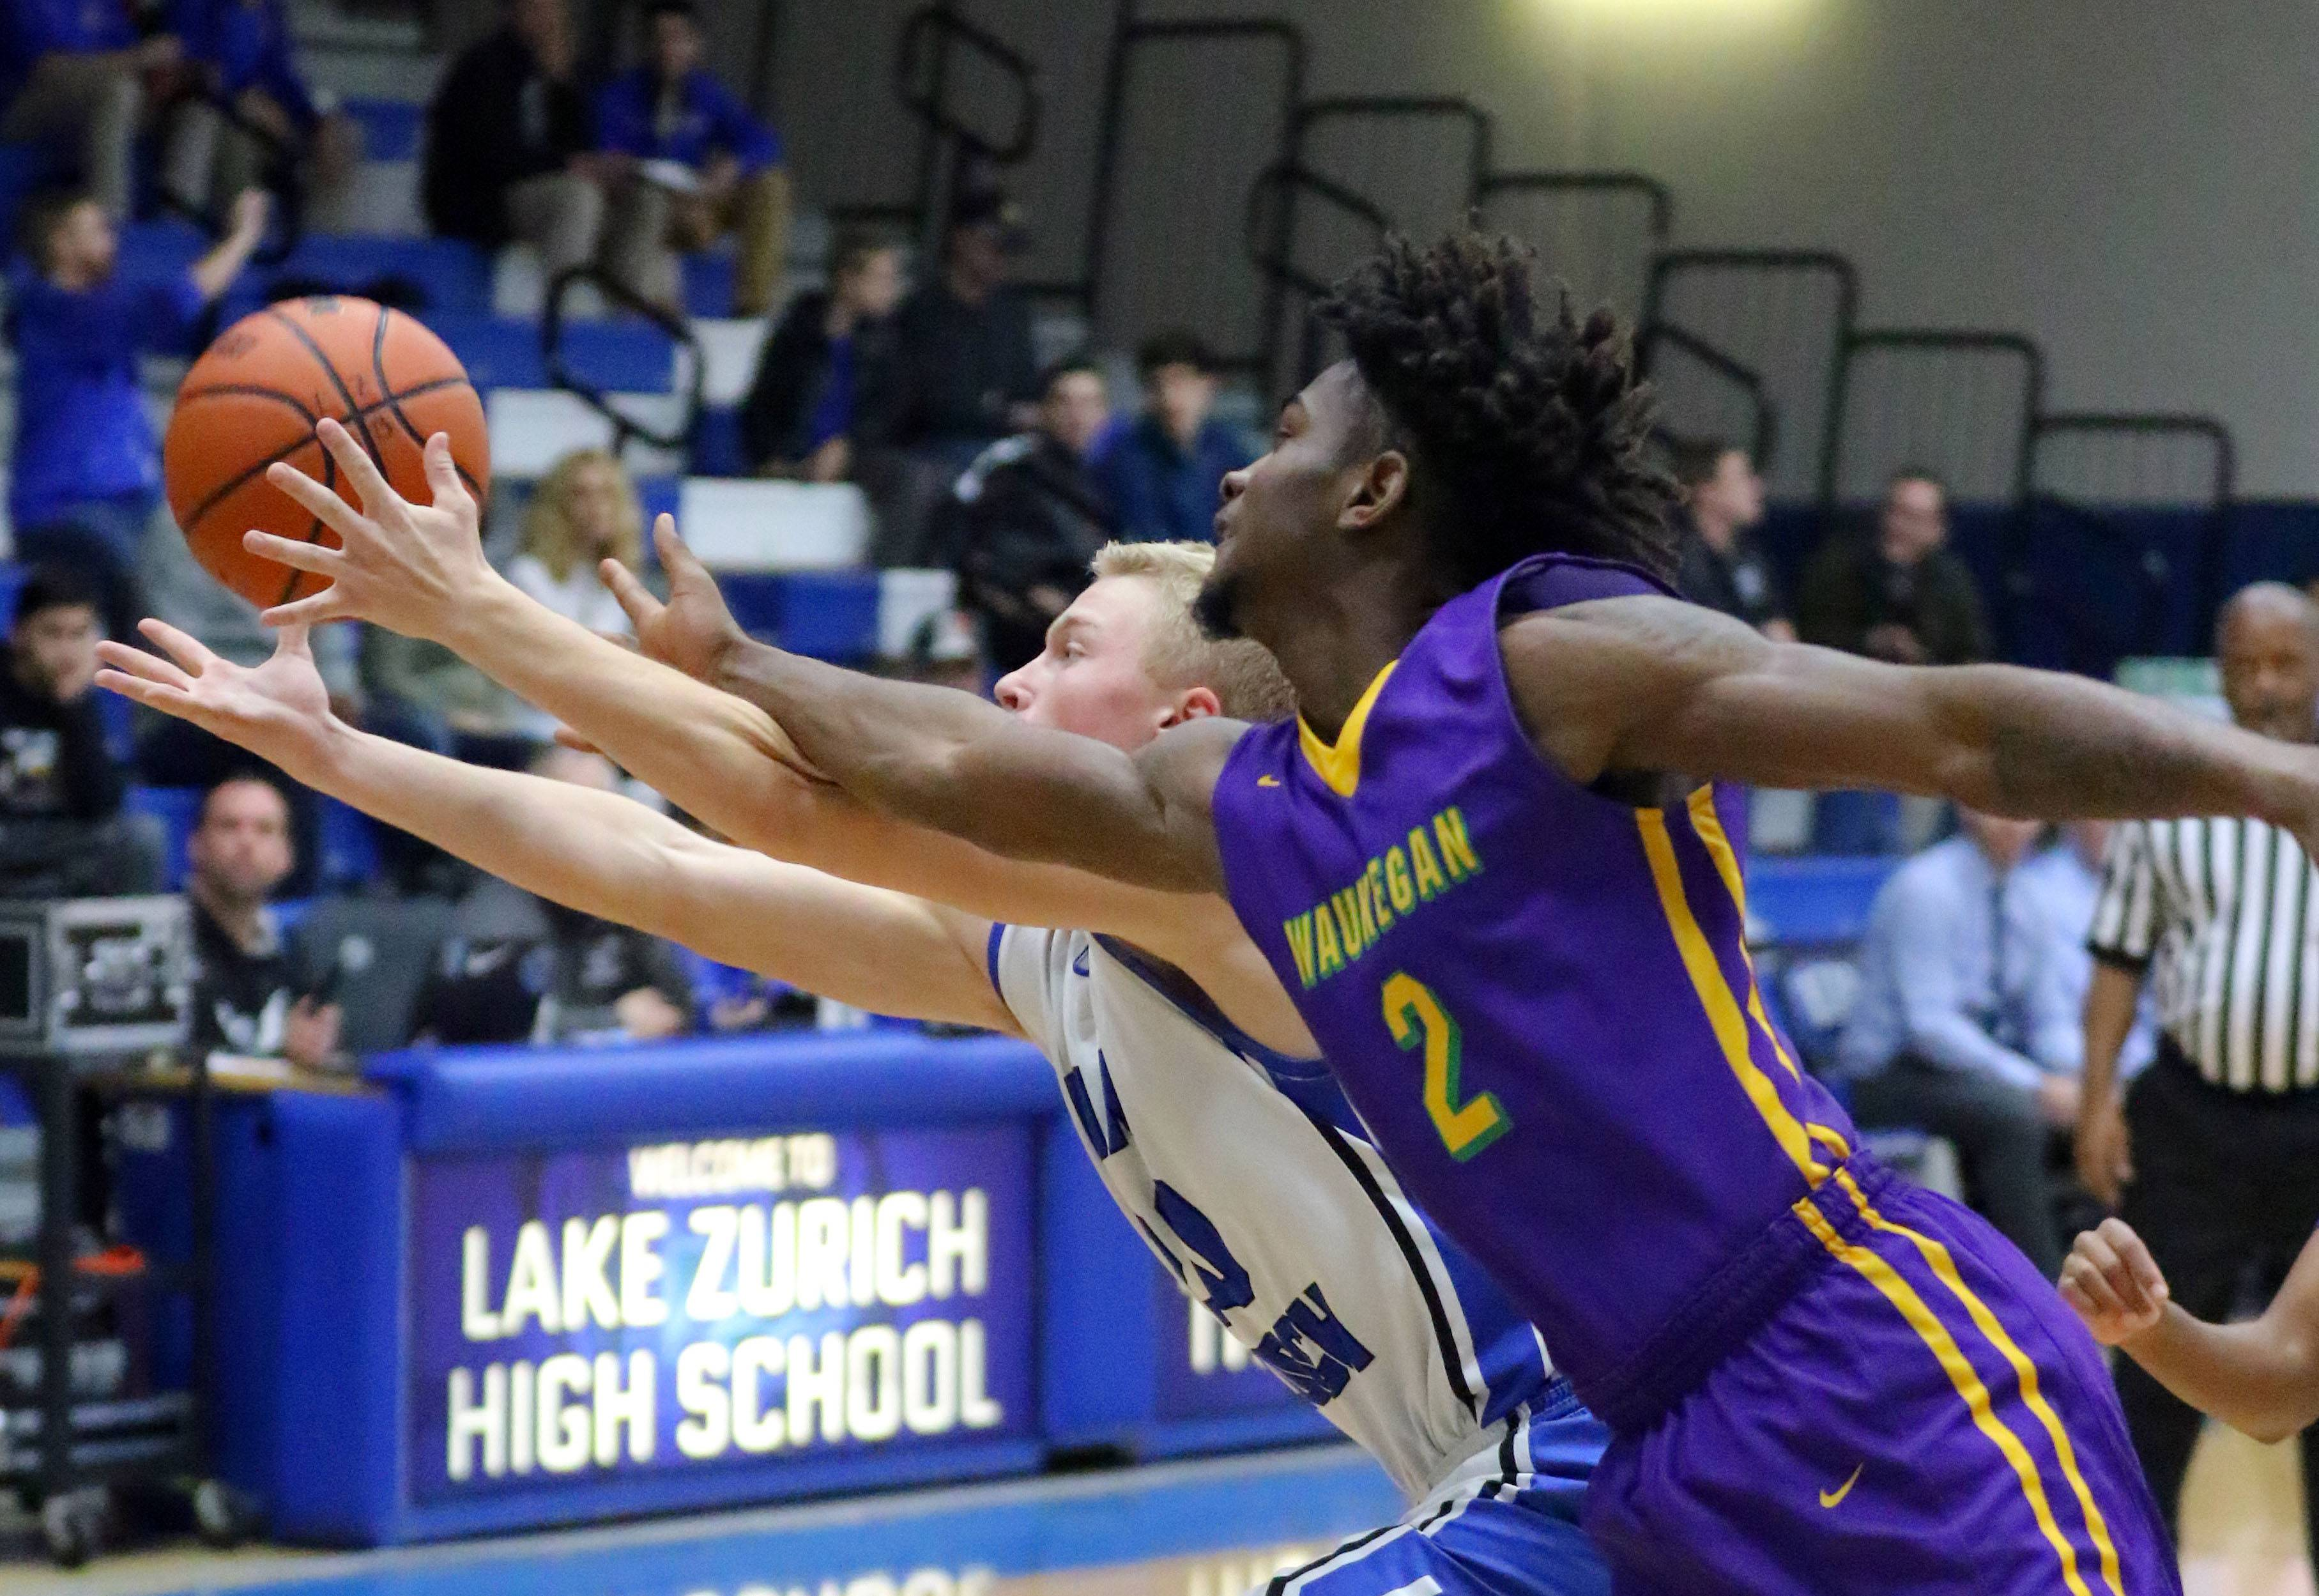 Lake Zurich's Joe Heffernan, left, and Waukegan's Ja'Dyn Brown fight for a rebound Friday in Lake Zurich.